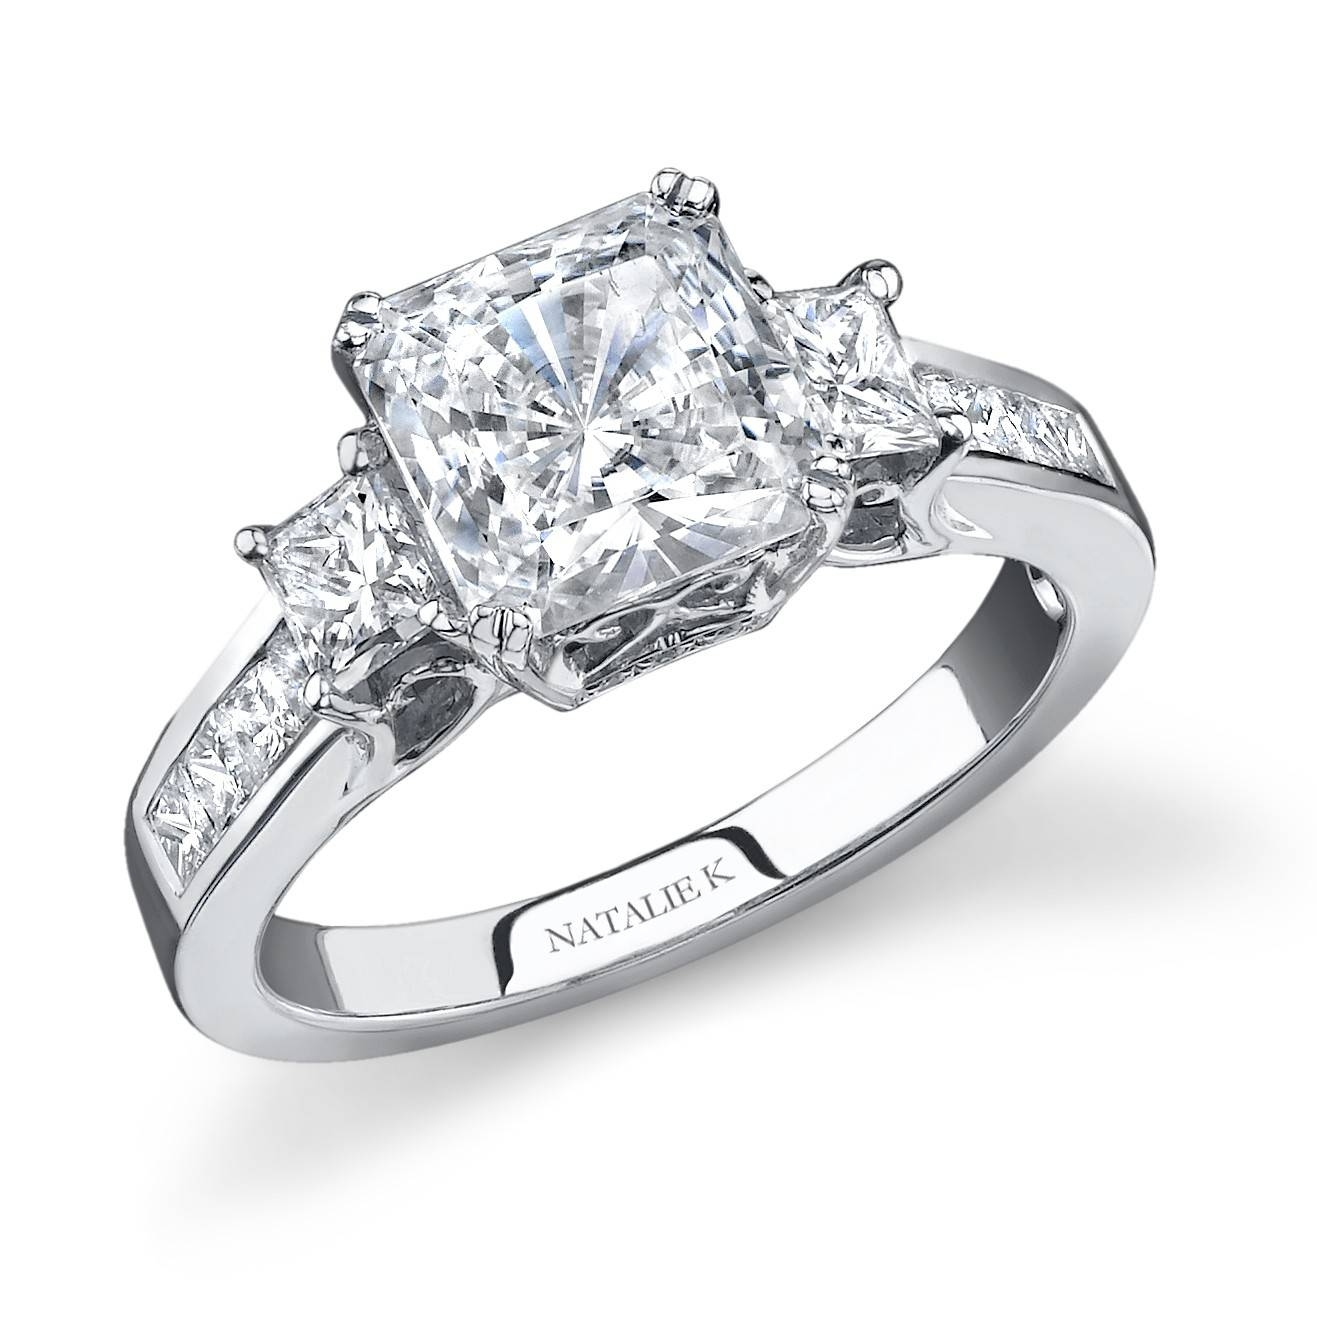 18K White Gold Princess Side Stone Channel Set Dia For Princess Cut Diamond Engagement Rings With Side Stones (Gallery 13 of 15)